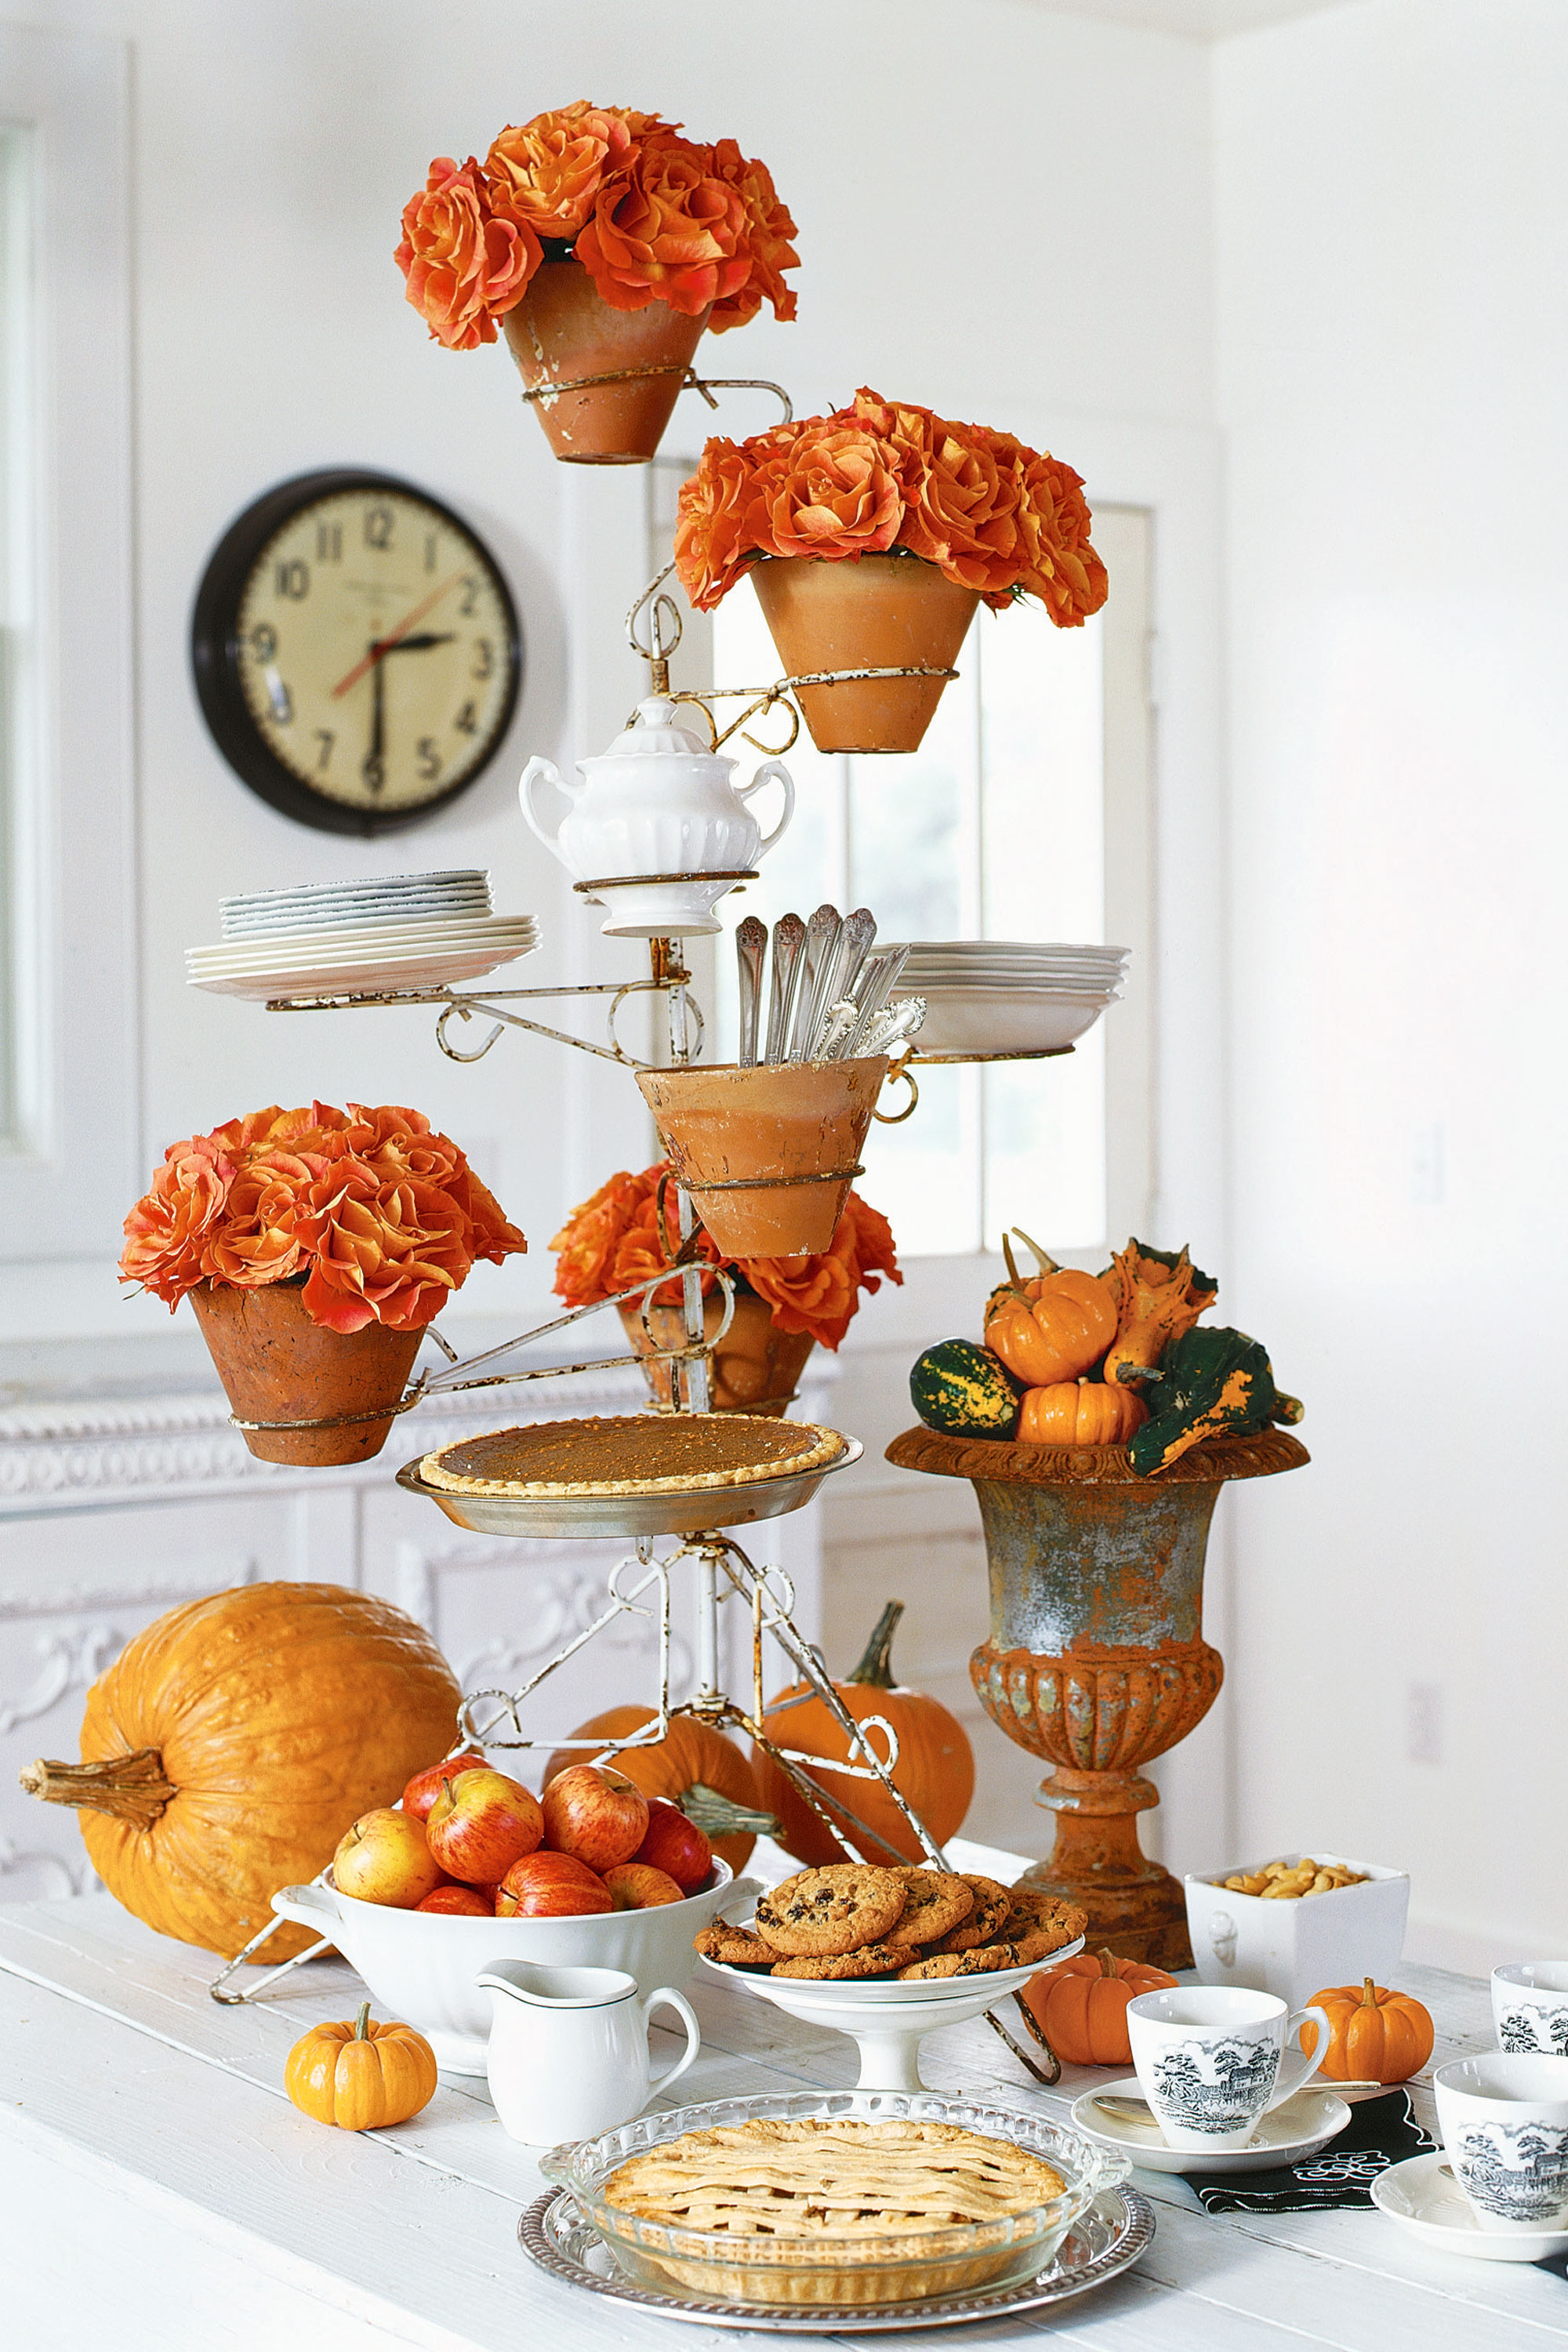 How To Turn Your Thanksgiving Decor Into A Success